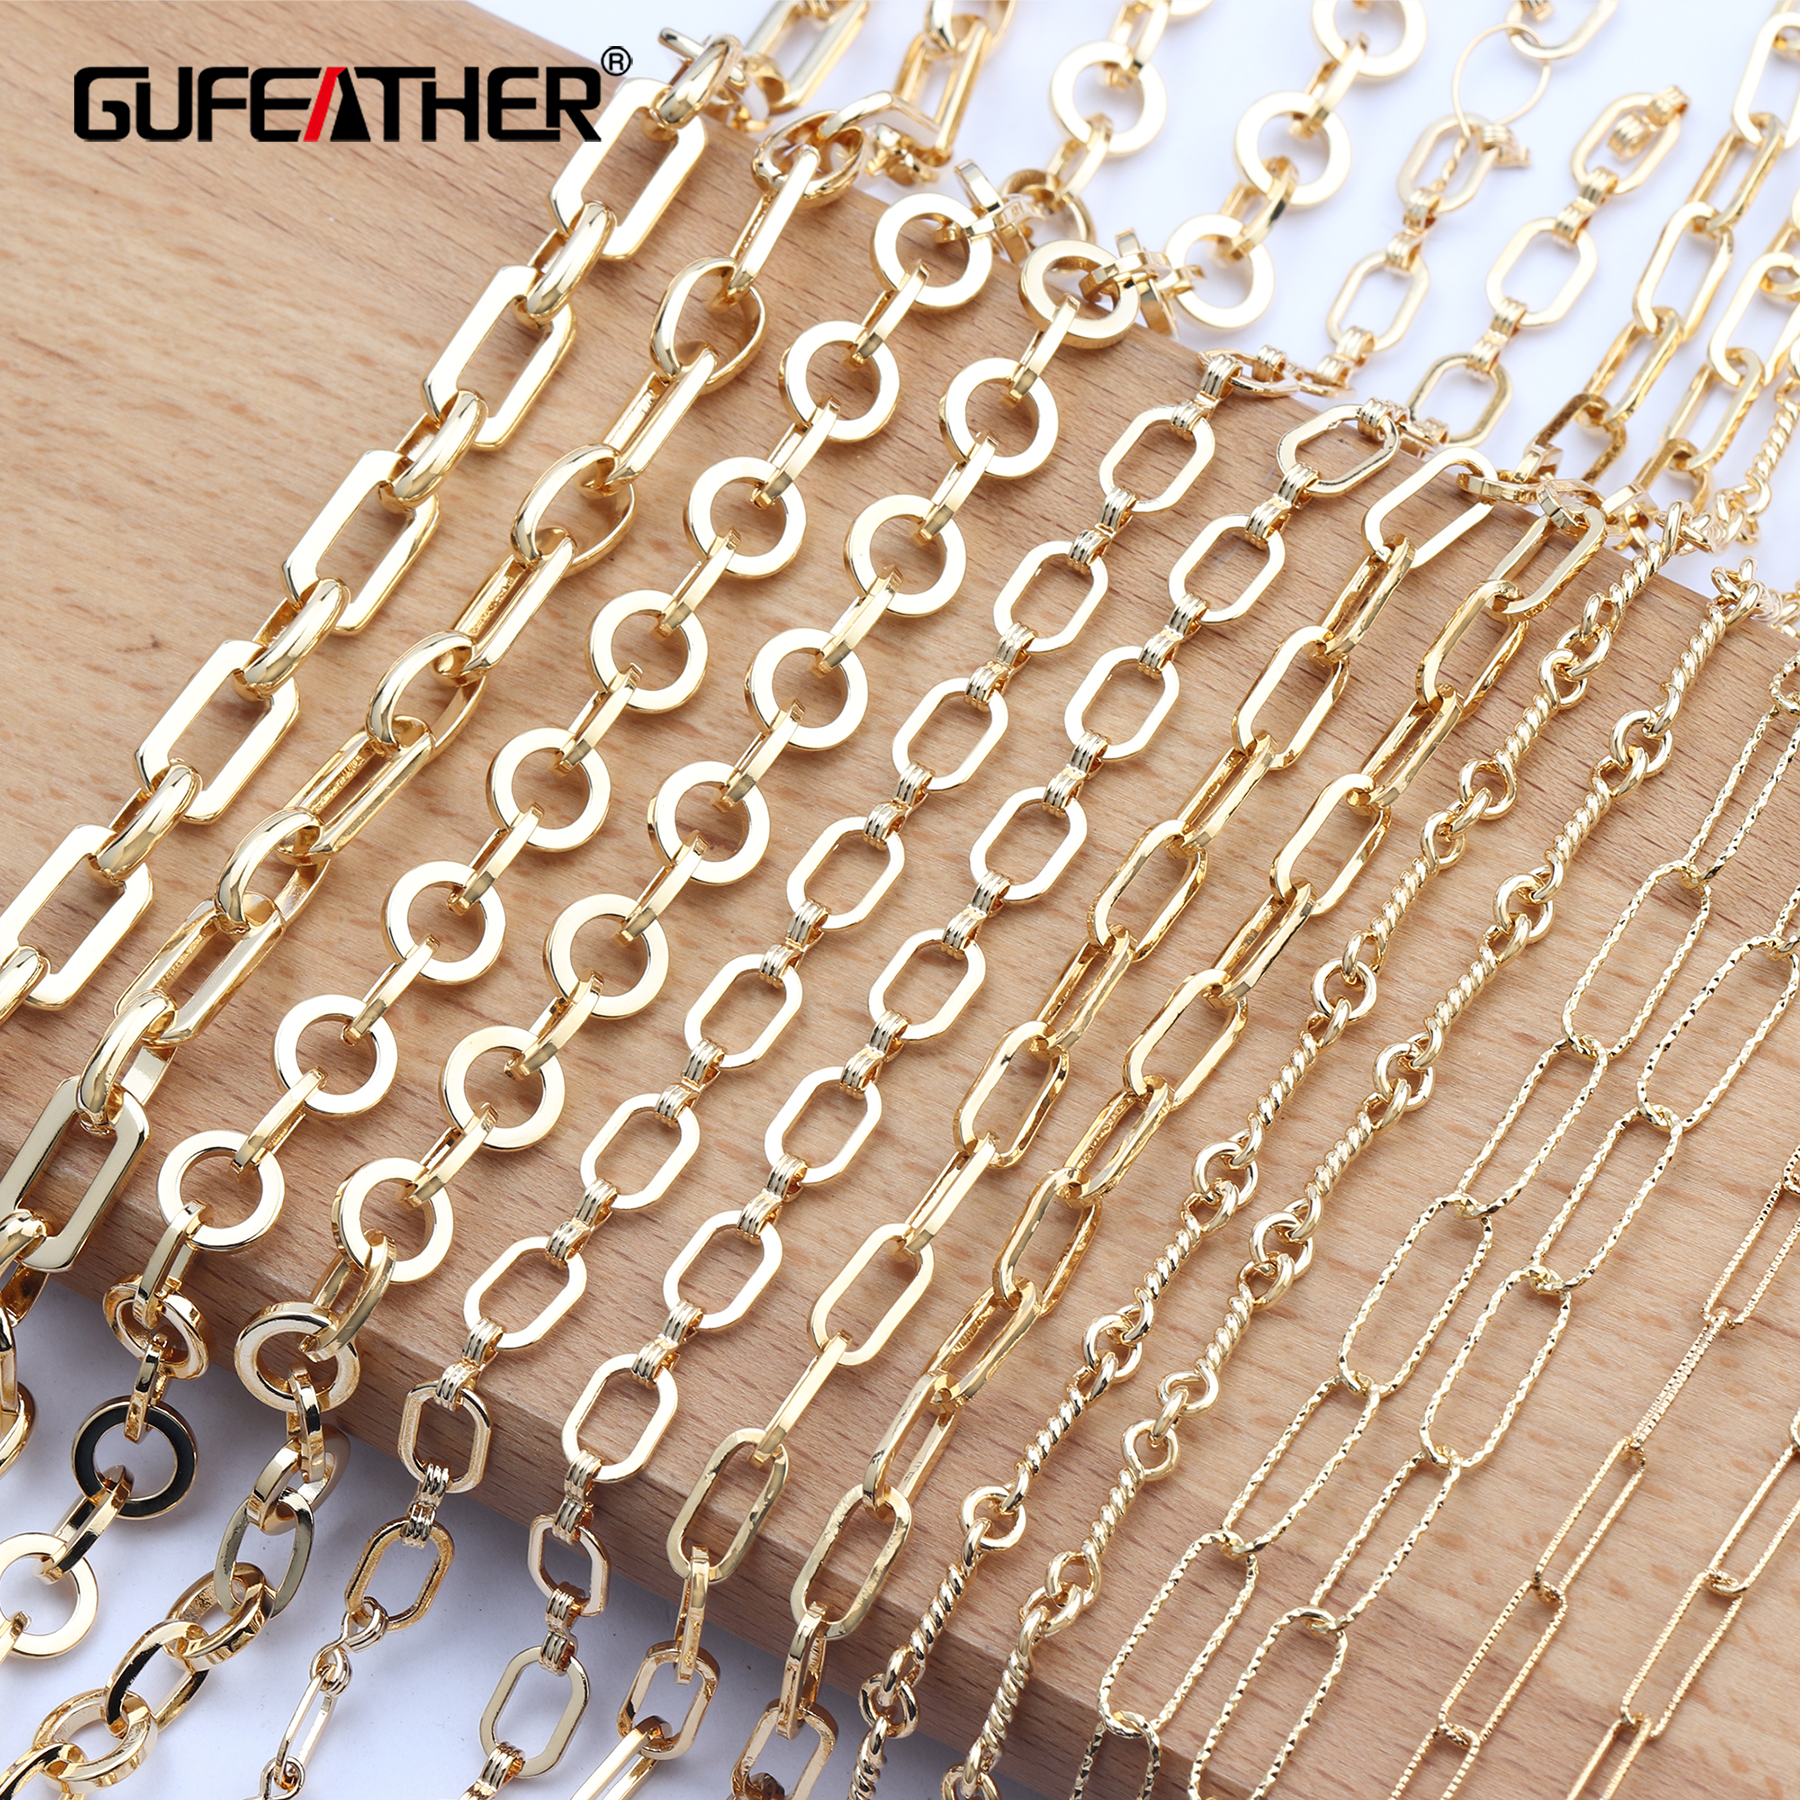 GUFEATHER C73,diy Chain,18k Gold Plated,jewelry Accessories,hand Made,copper Metal,jewelry Making,diy Chain Necklace,1m/lot